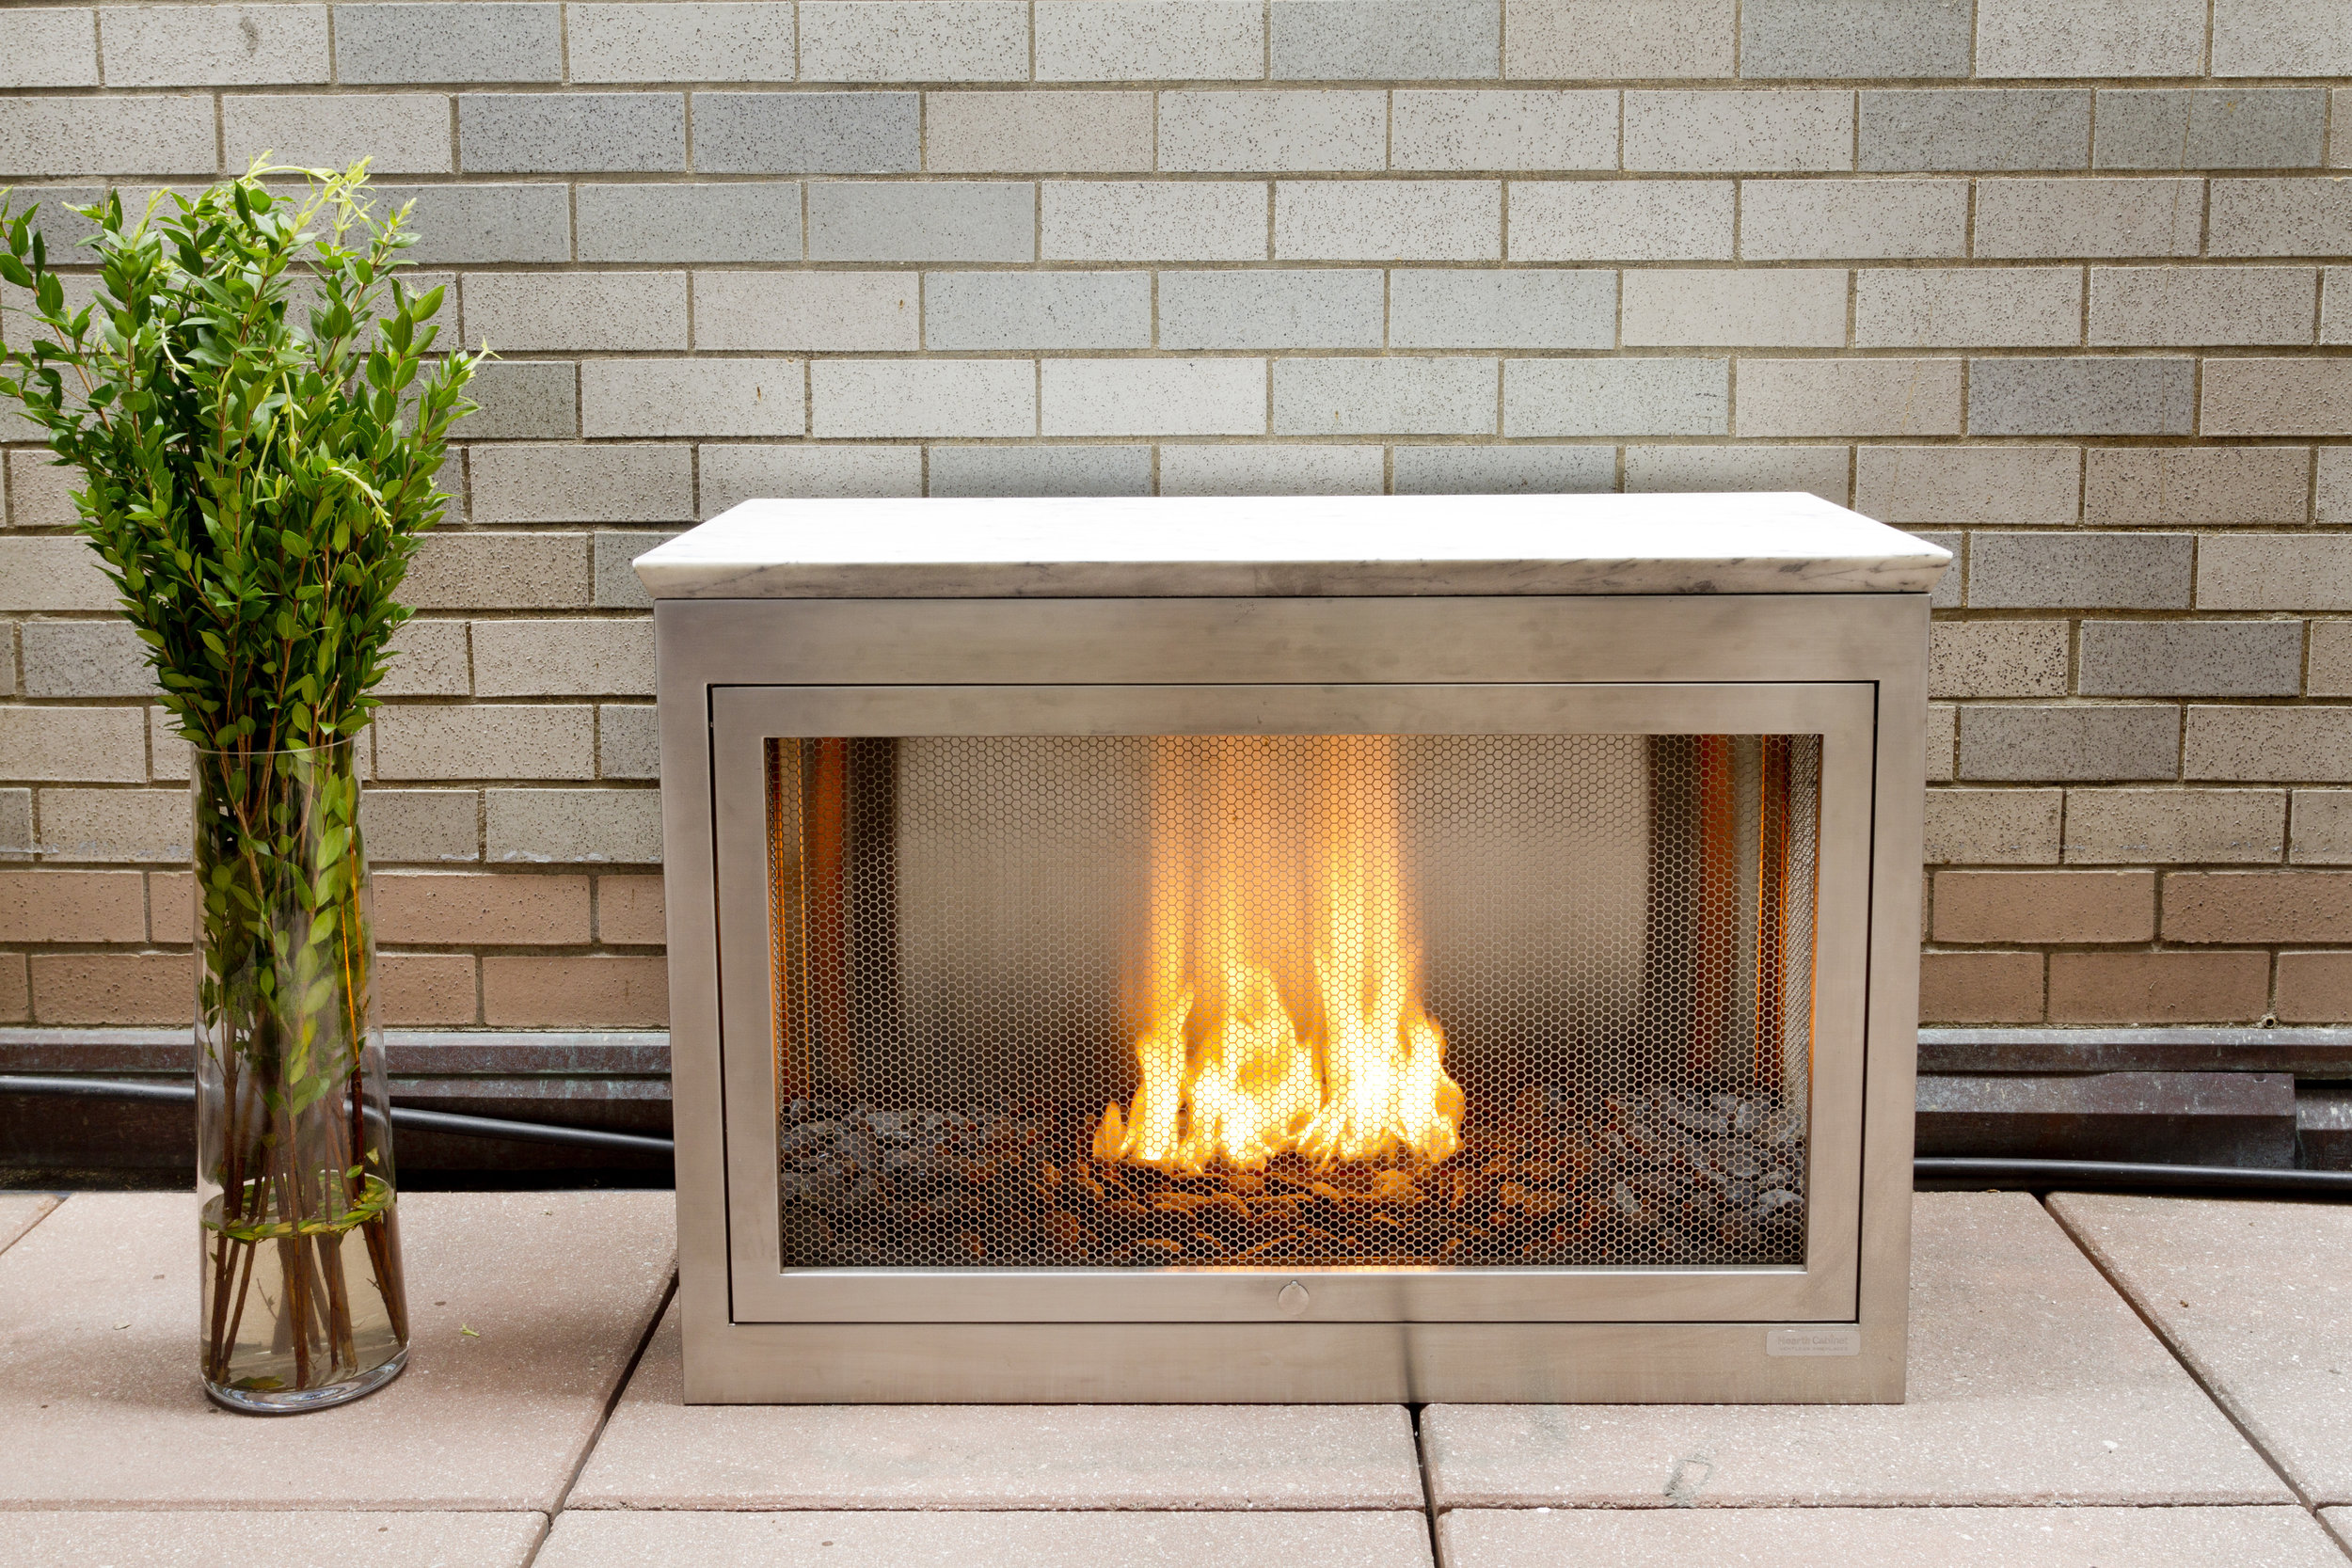 3-sided Landscape HearthCabinet Ventless Fireplace, finished in stainless steel